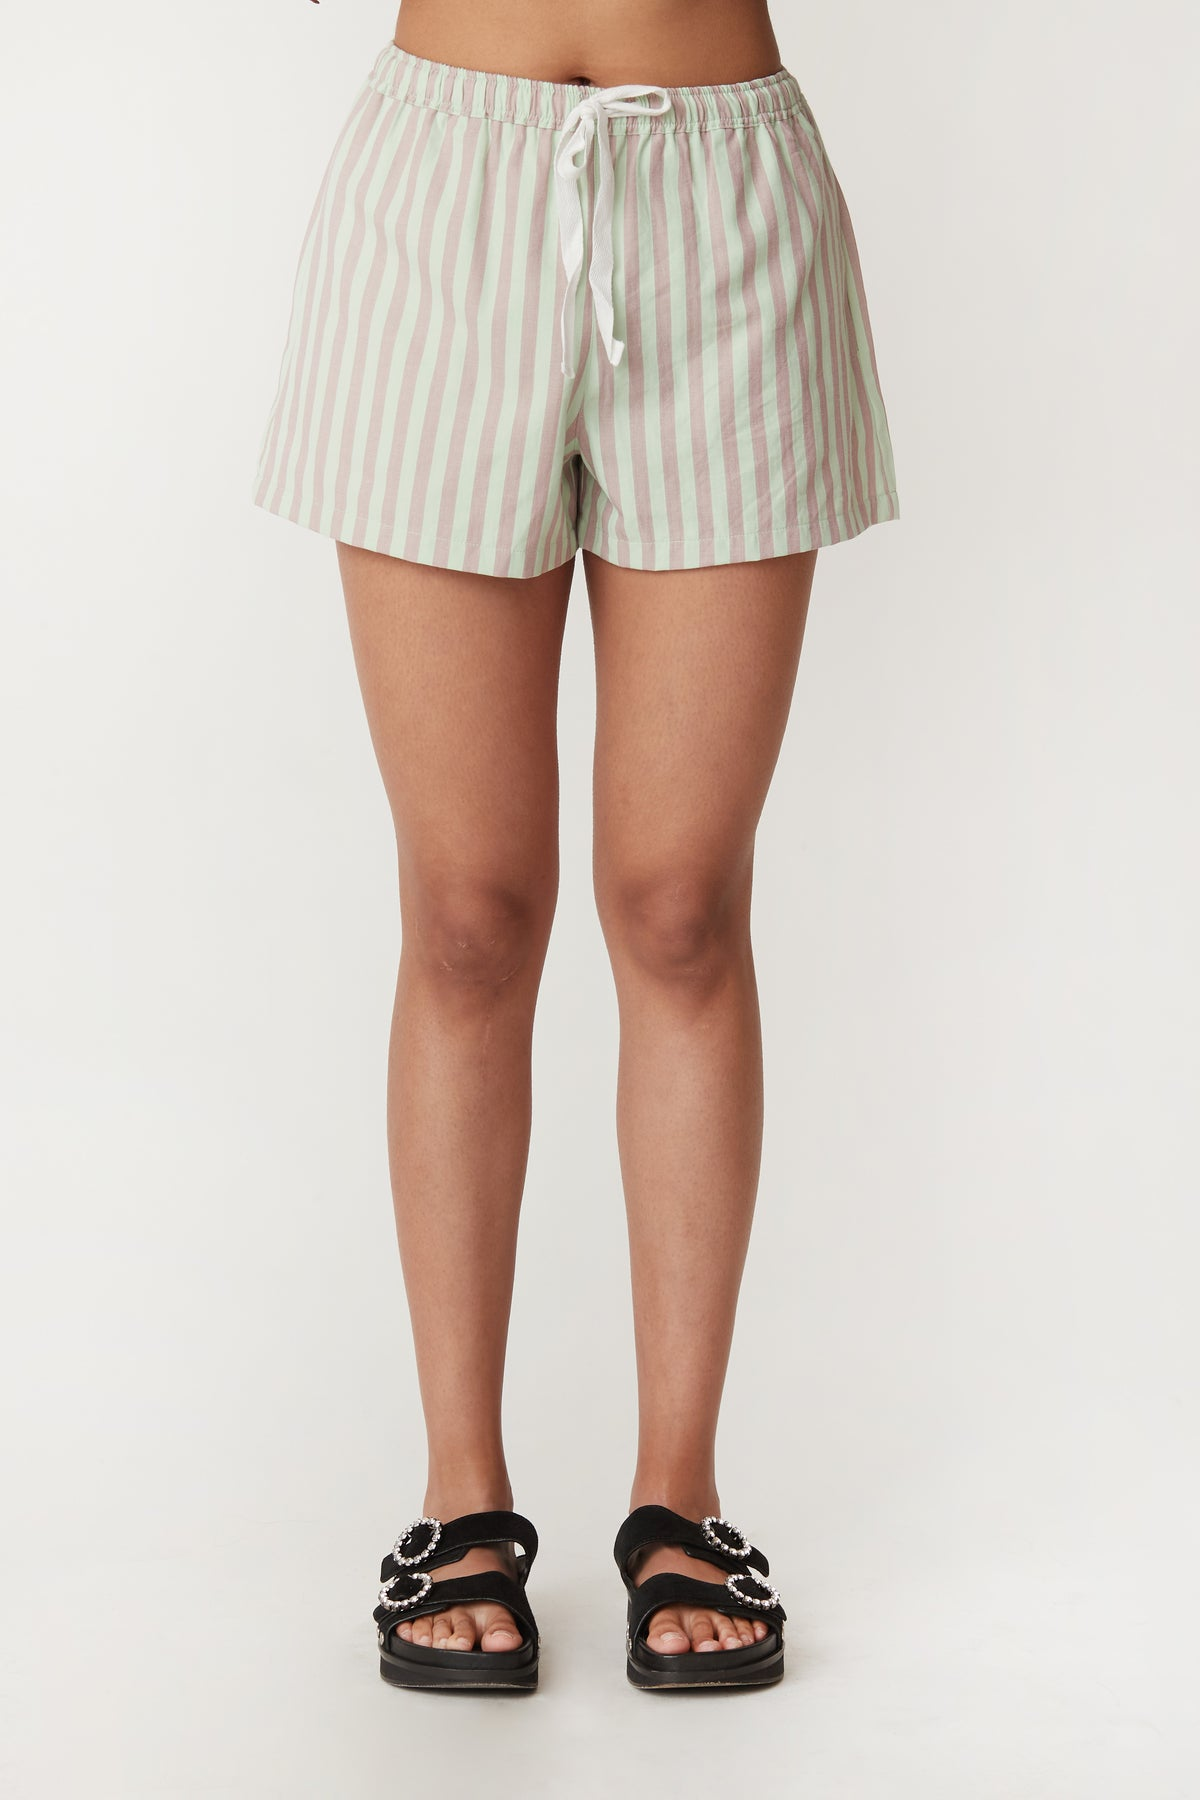 Tina Shorts Green